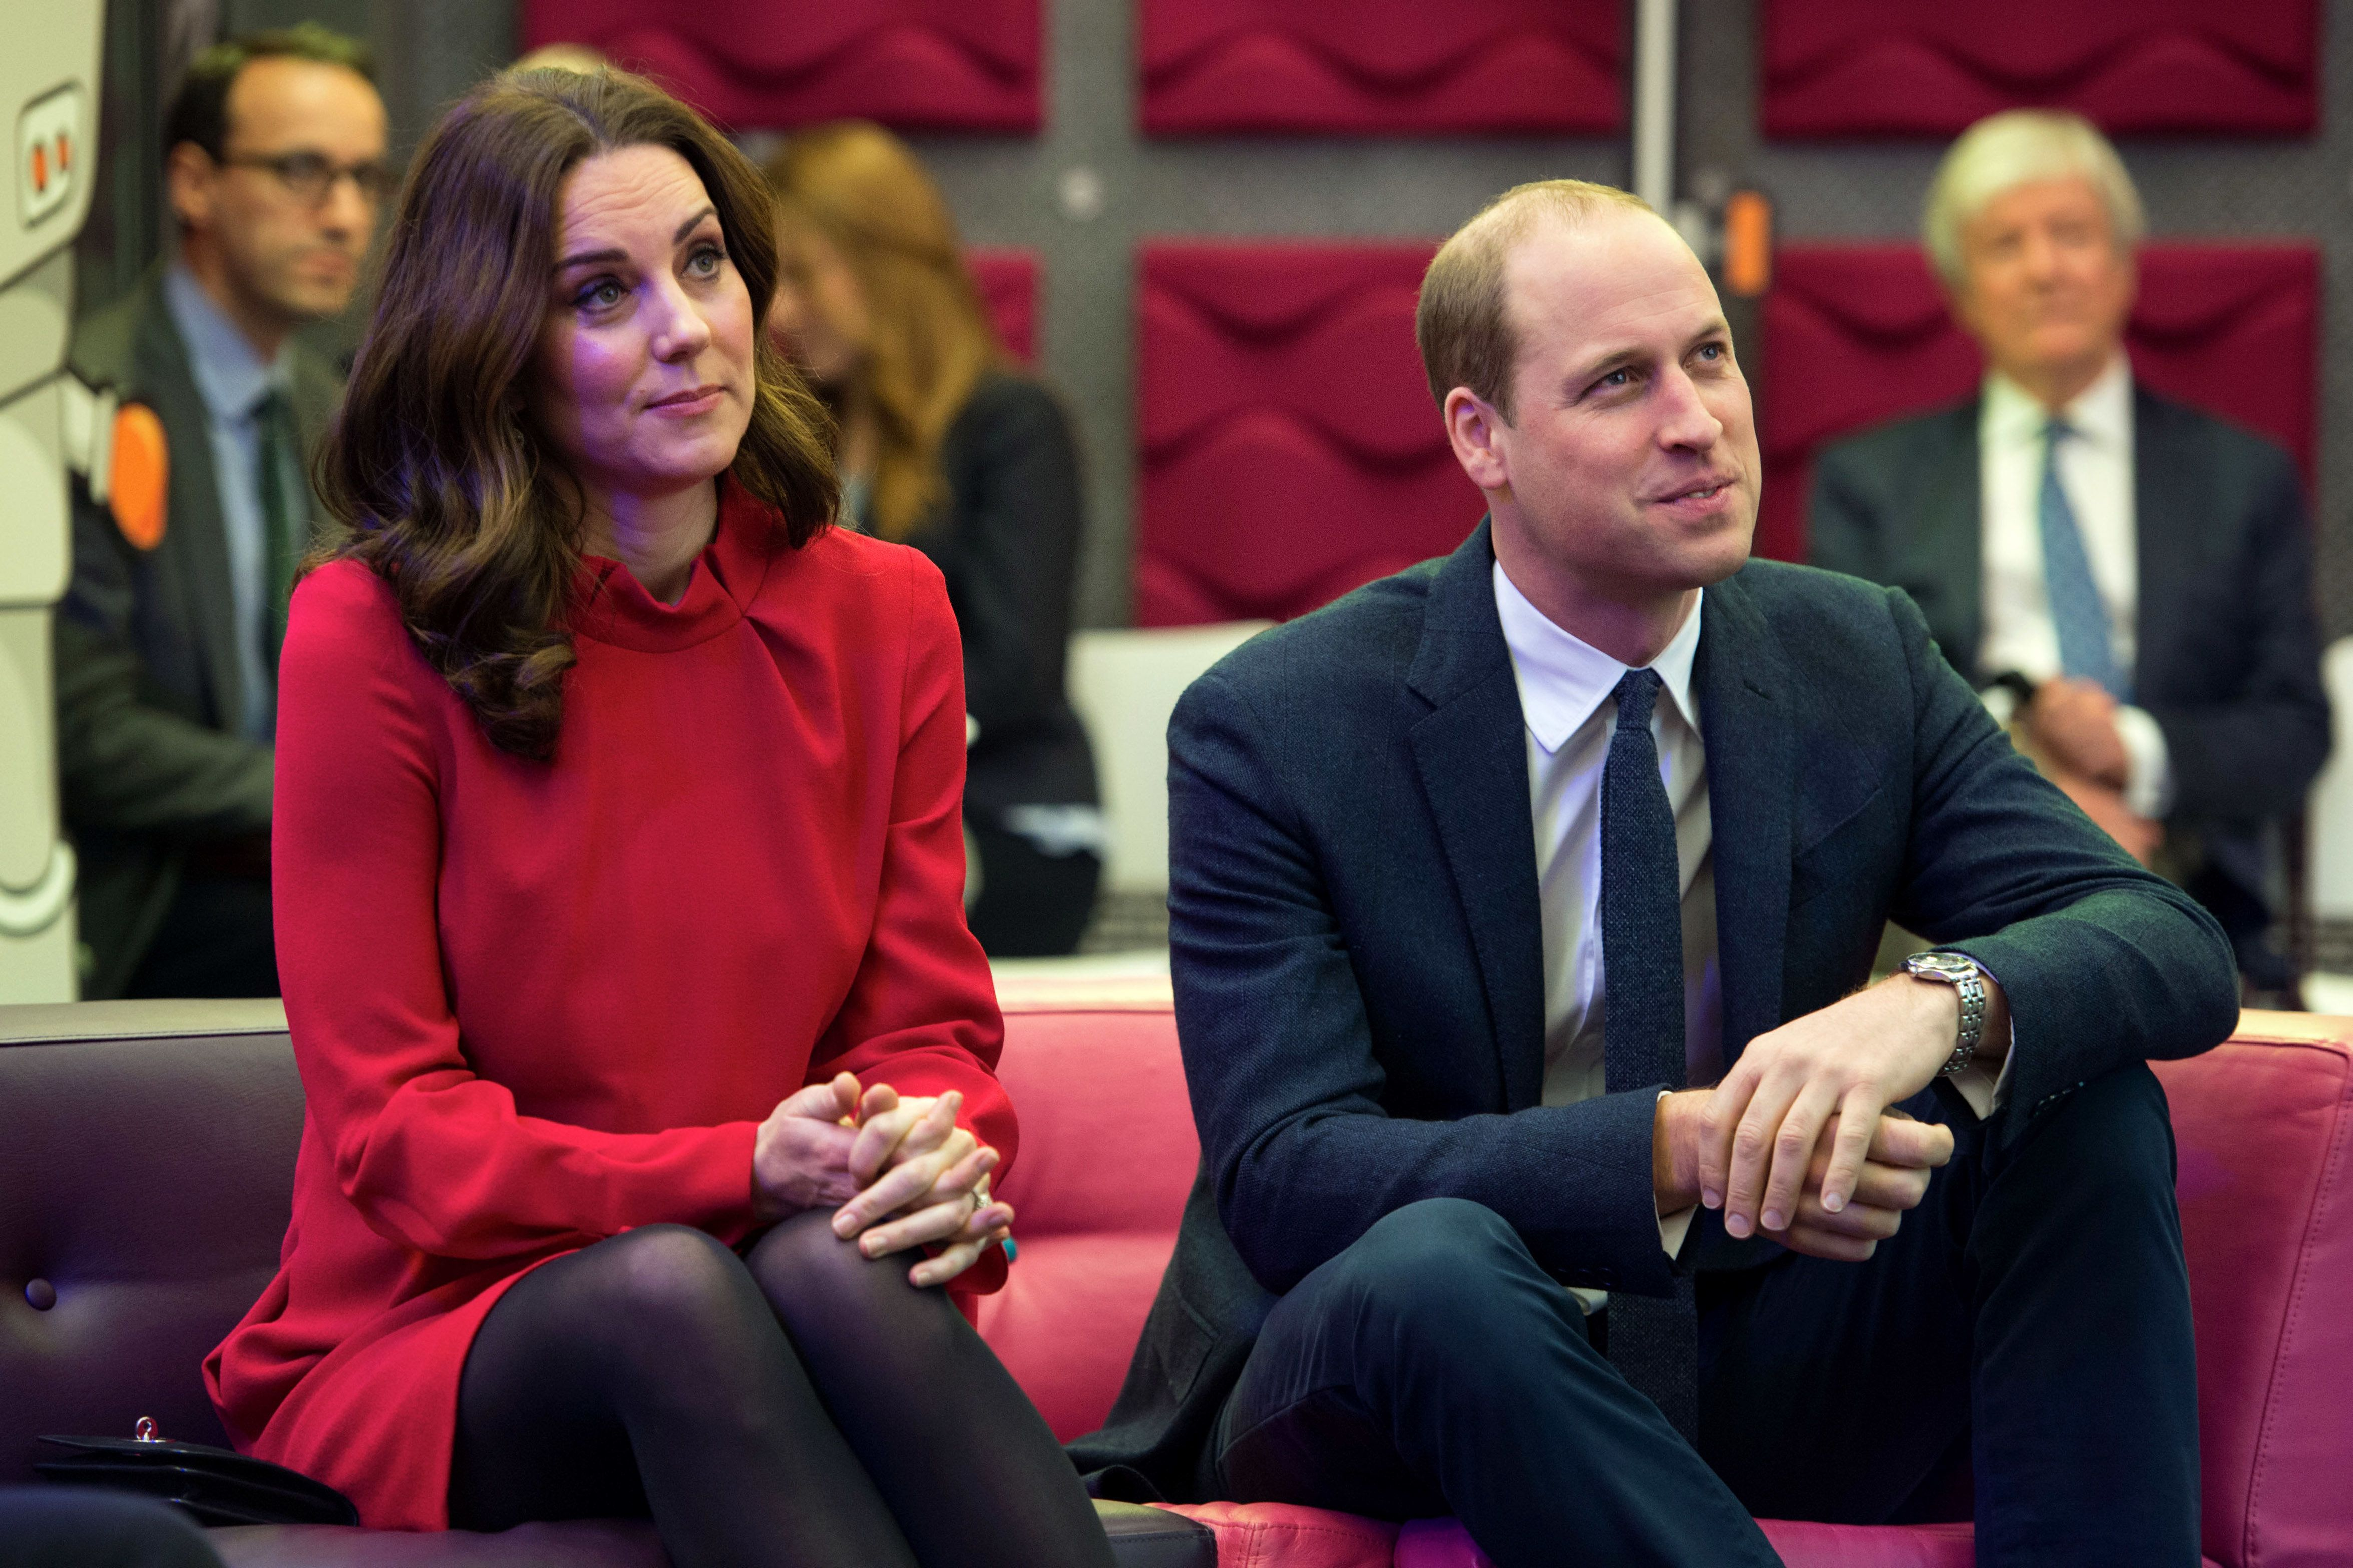 Duke Of Cambridge Says Millennial Parents Are Facing A 'Moment Of